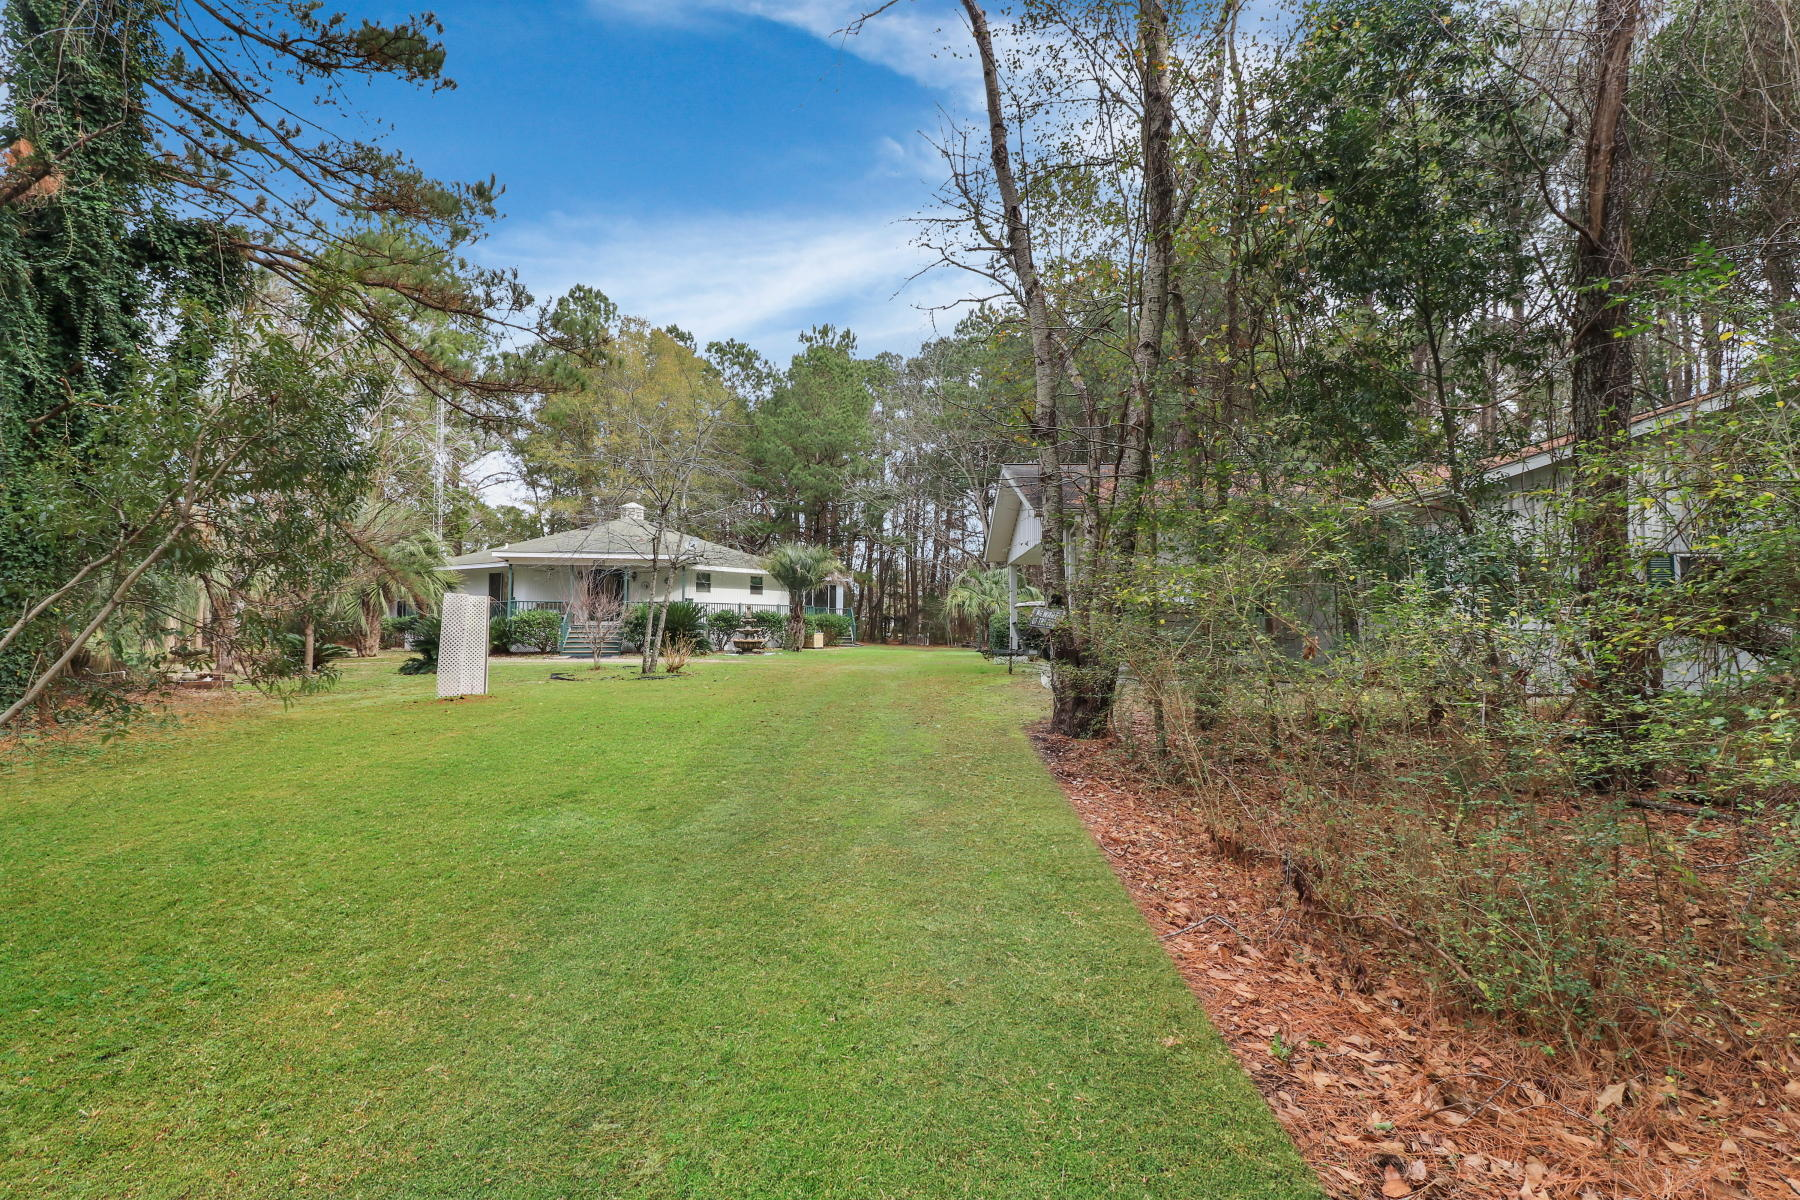 Plantation II Homes For Sale - 141 Meredith, Eutawville, SC - 18